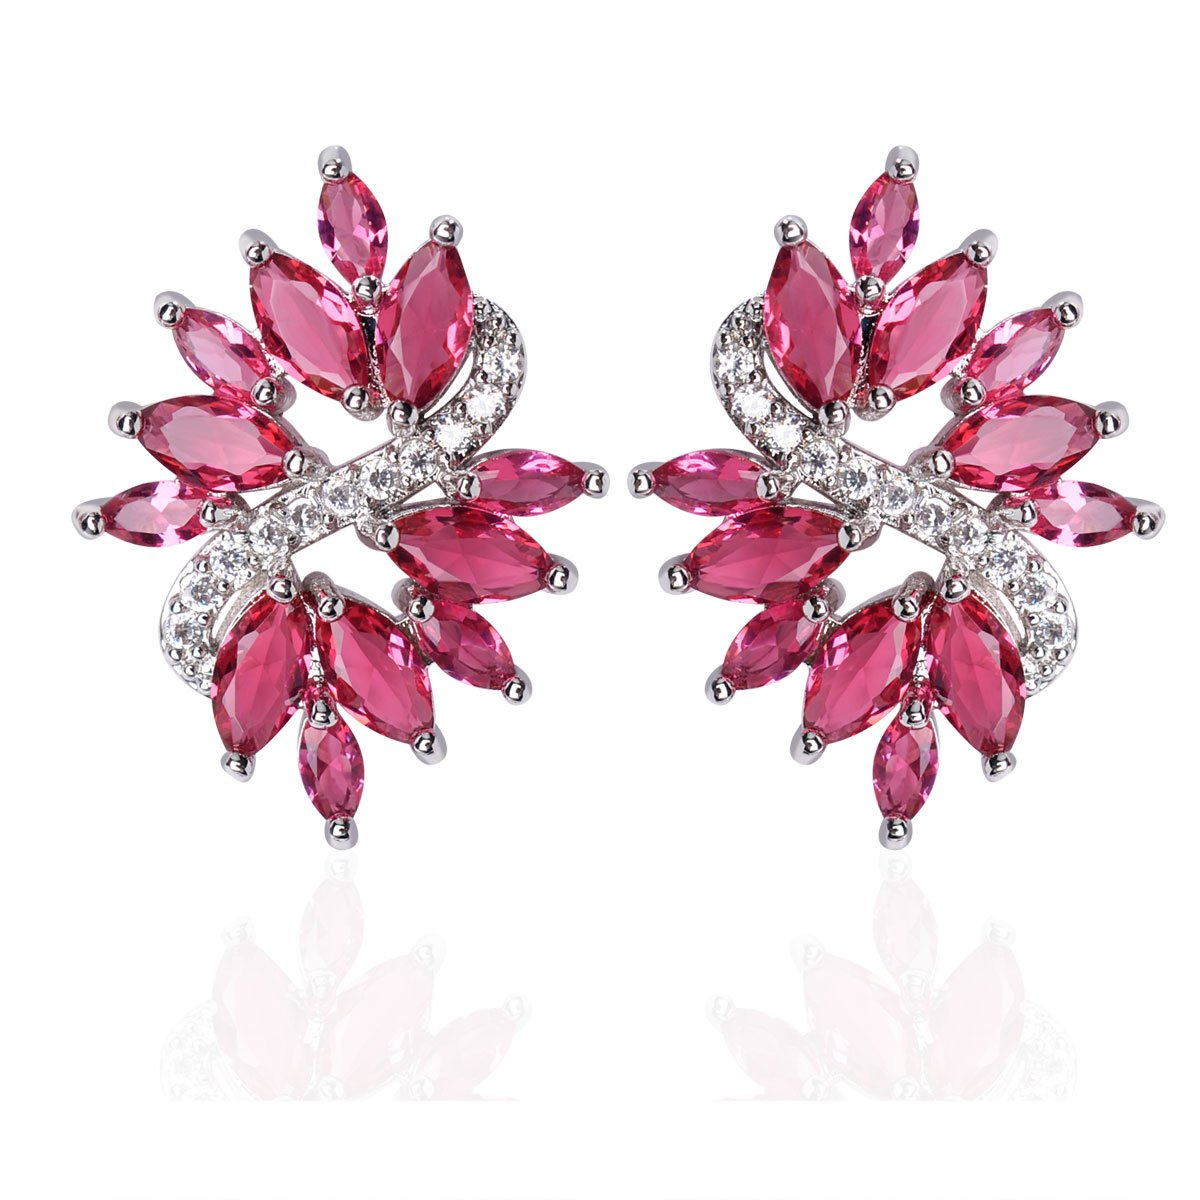 Cluster Crystal Teardrop Flower Design Stud Earrings Fine Jewelry for Women Valentines Day Gifts for Her